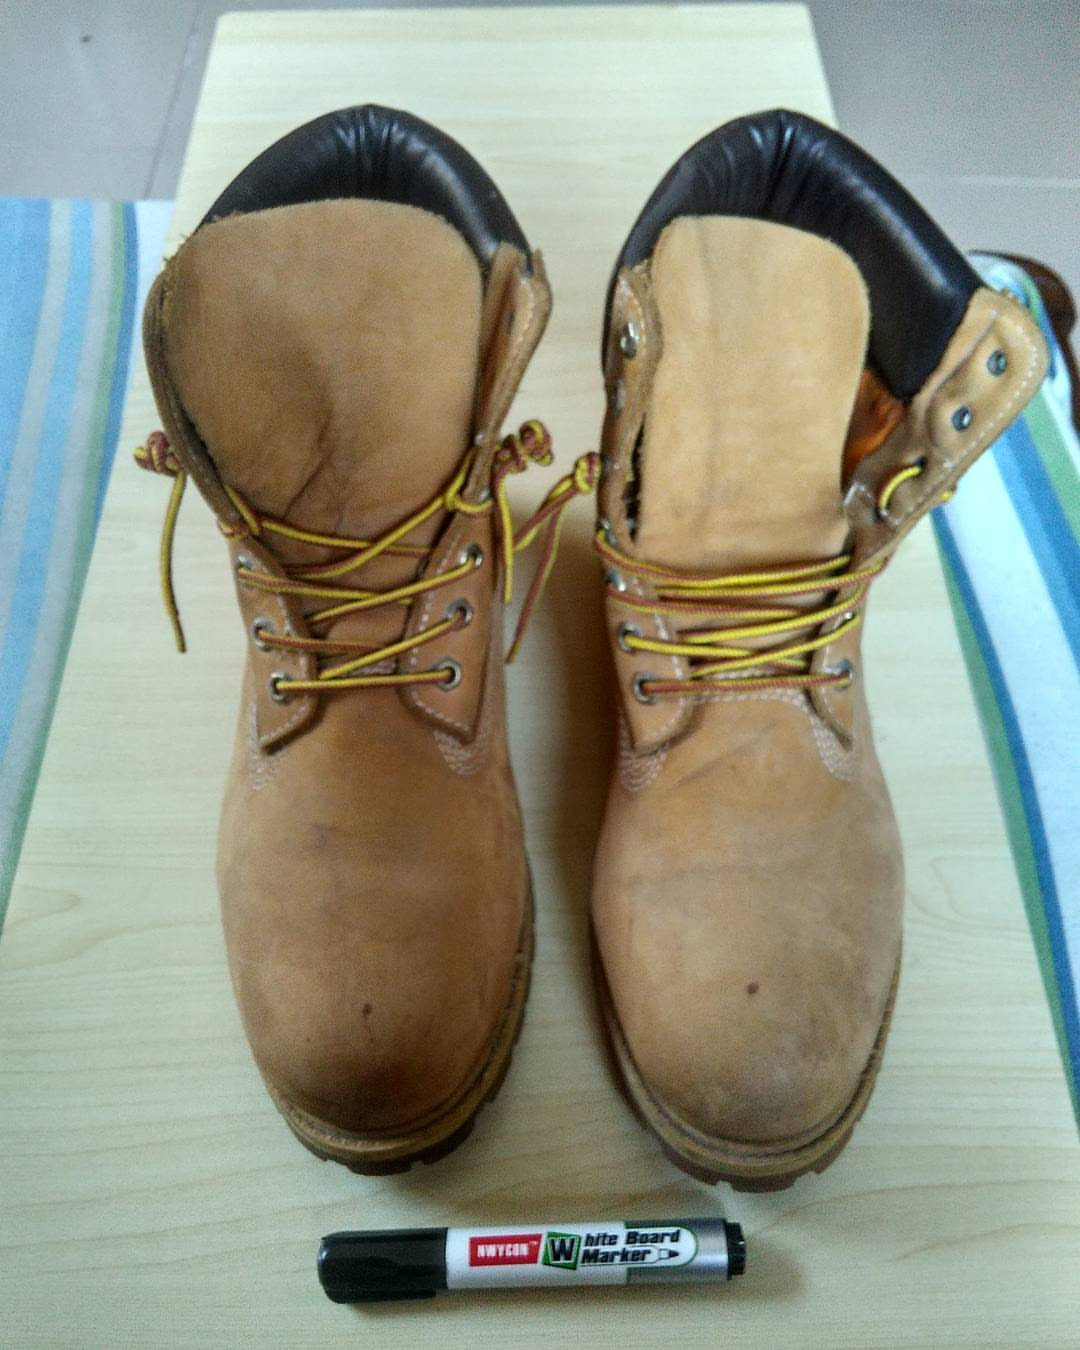 AMAZING!!! Check Out What One Of Our Blog Readers Did To His Timbaland Boots!!!